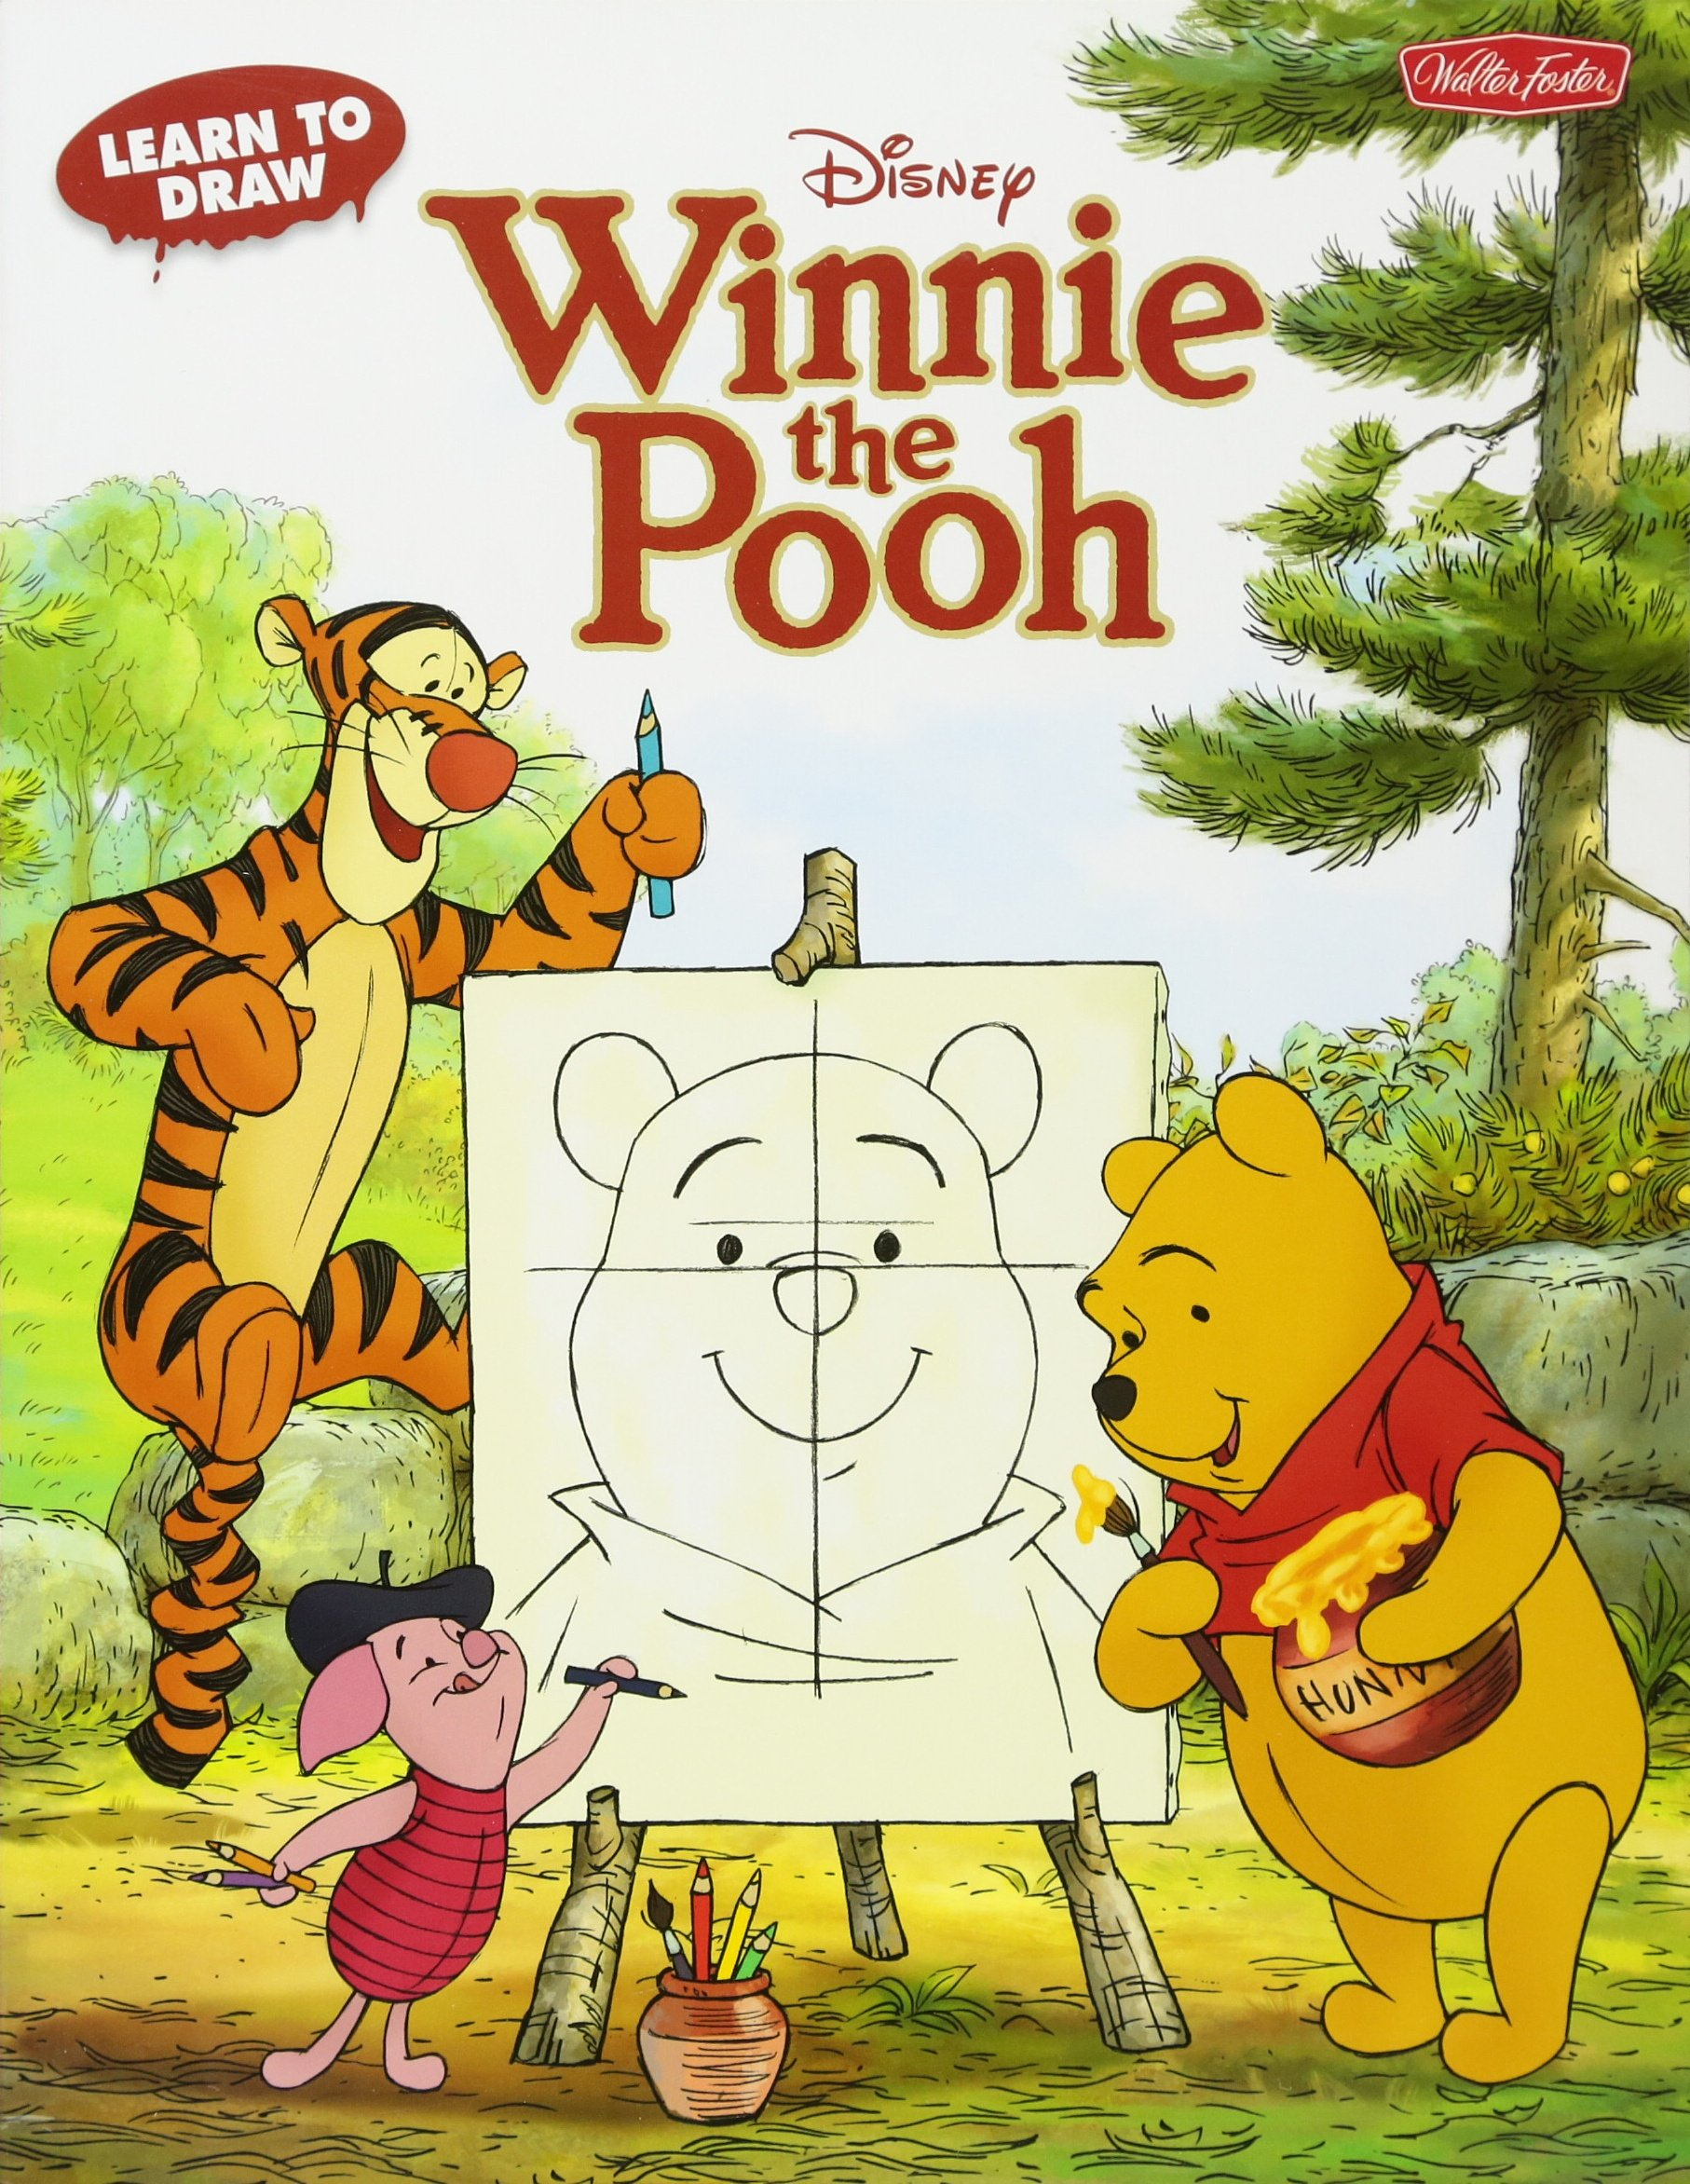 Read Online Learn to Draw Disney's Winnie the Pooh: Featuring Tigger, Eeyore, Piglet, and other favorite characters of the Hundred Acre Wood! (Licensed Learn to Draw) pdf